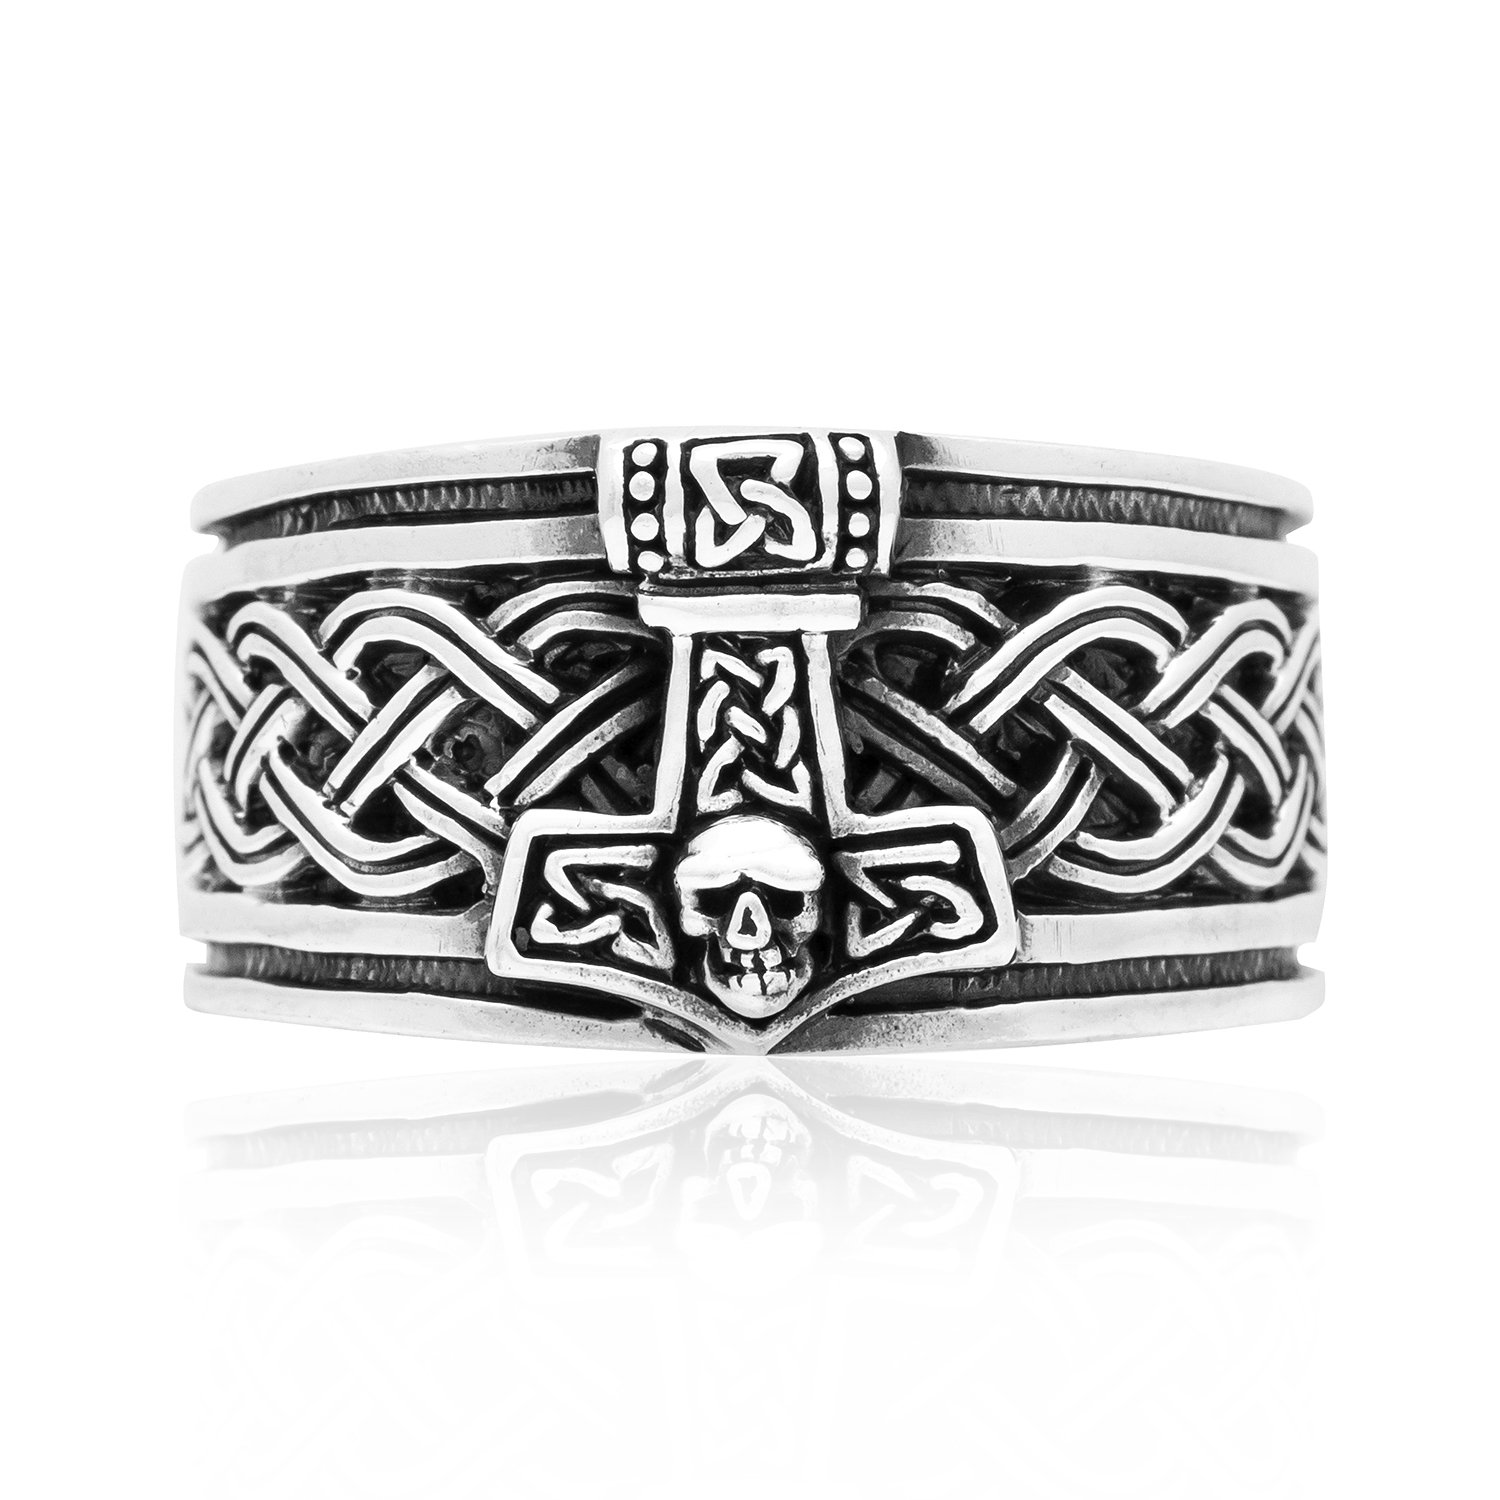 925 Sterling Silver Thor Hammer Band Ring With Celtic Infinity Knots